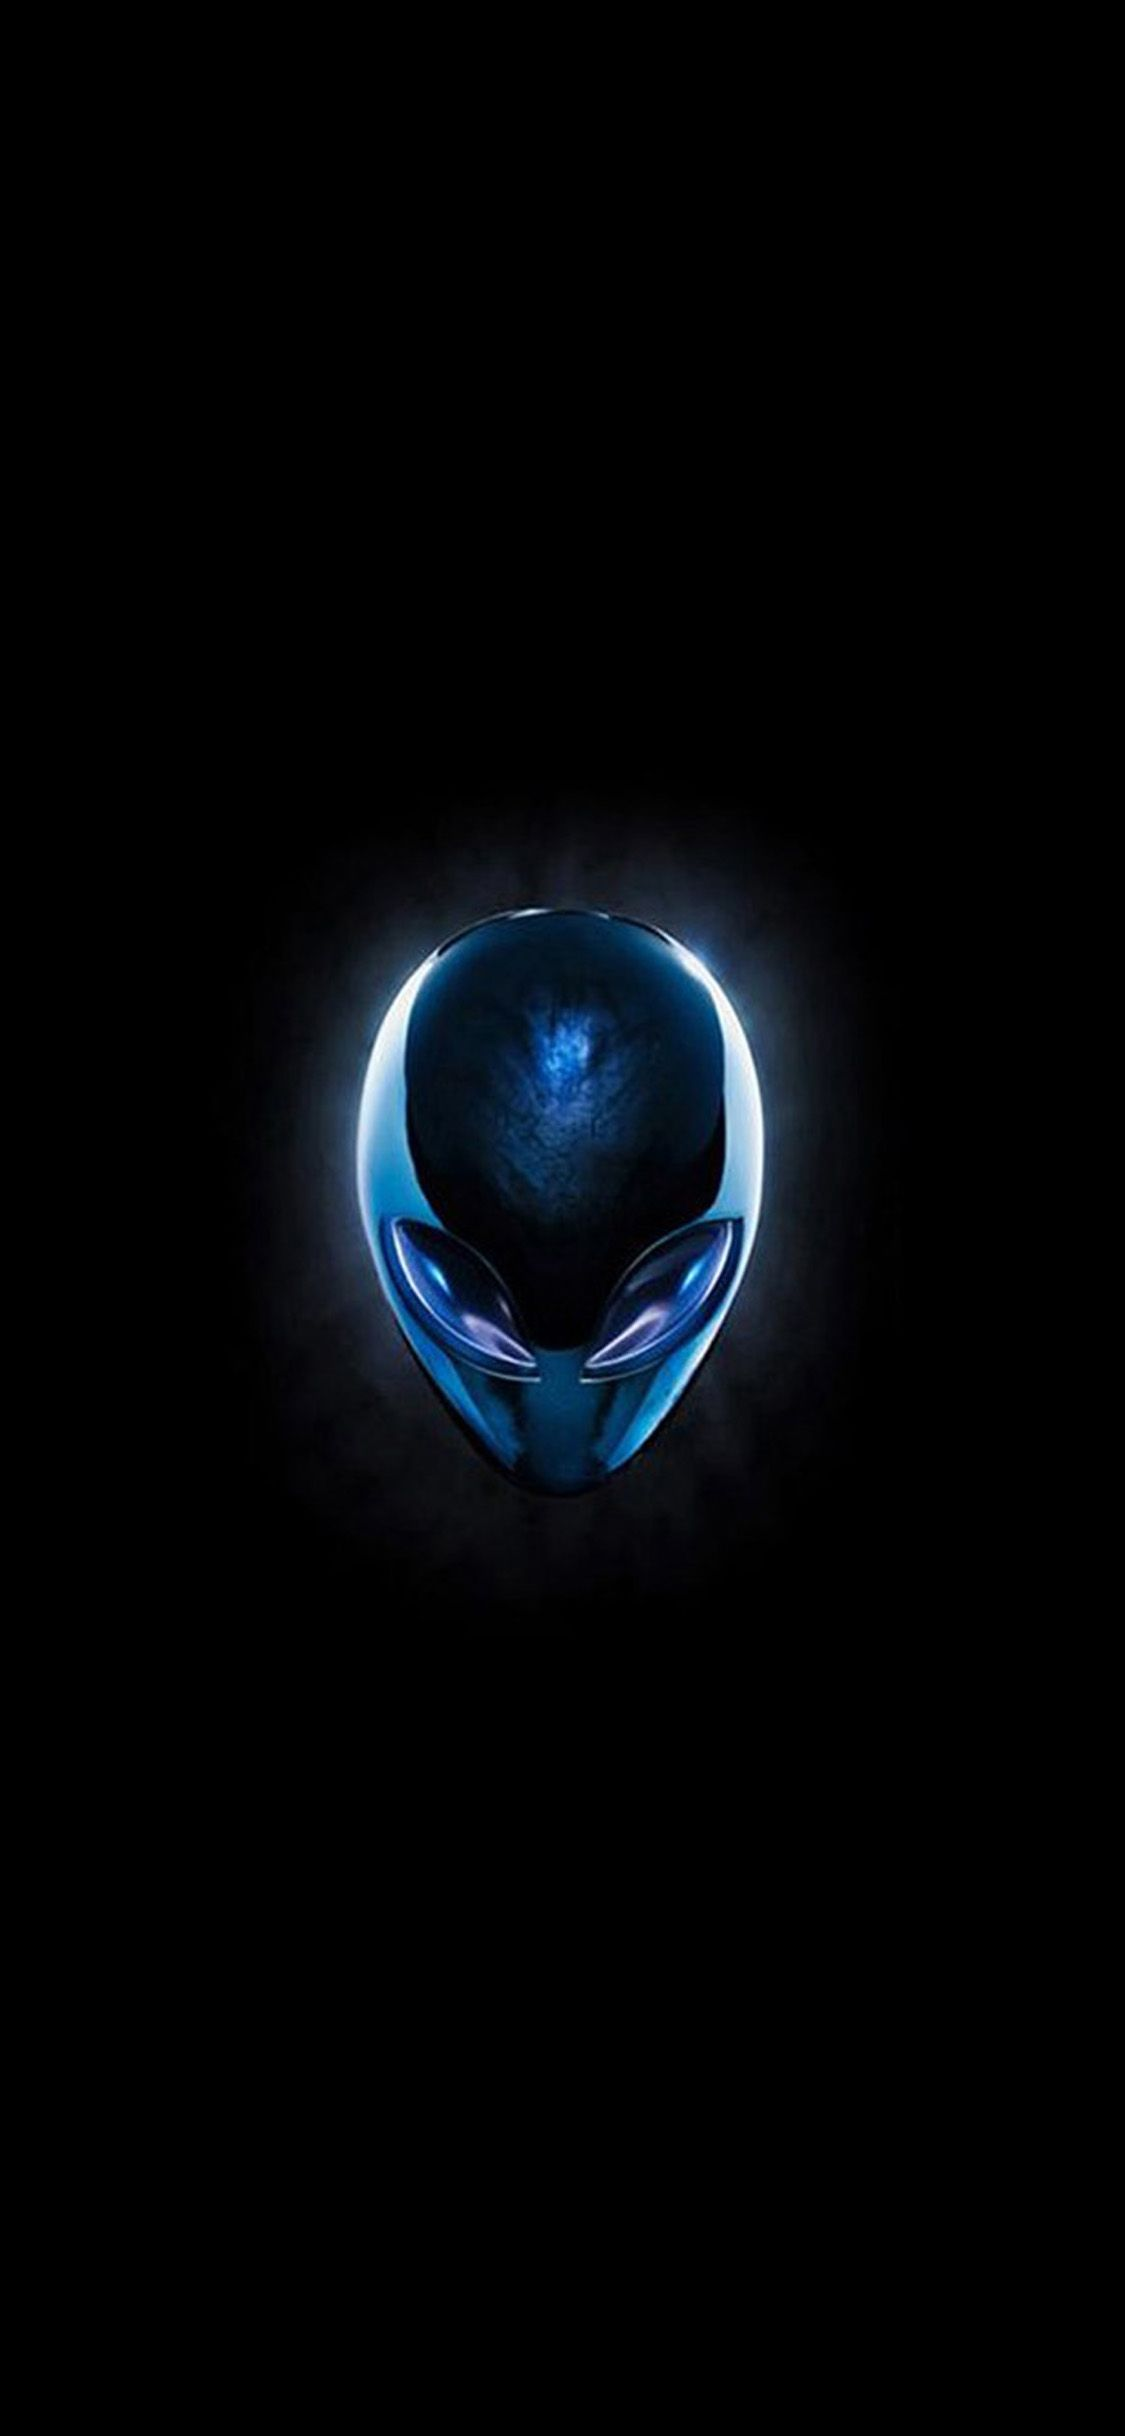 Alien 3D iPhone Wallpapers - Top Free Alien 3D iPhone Backgrounds